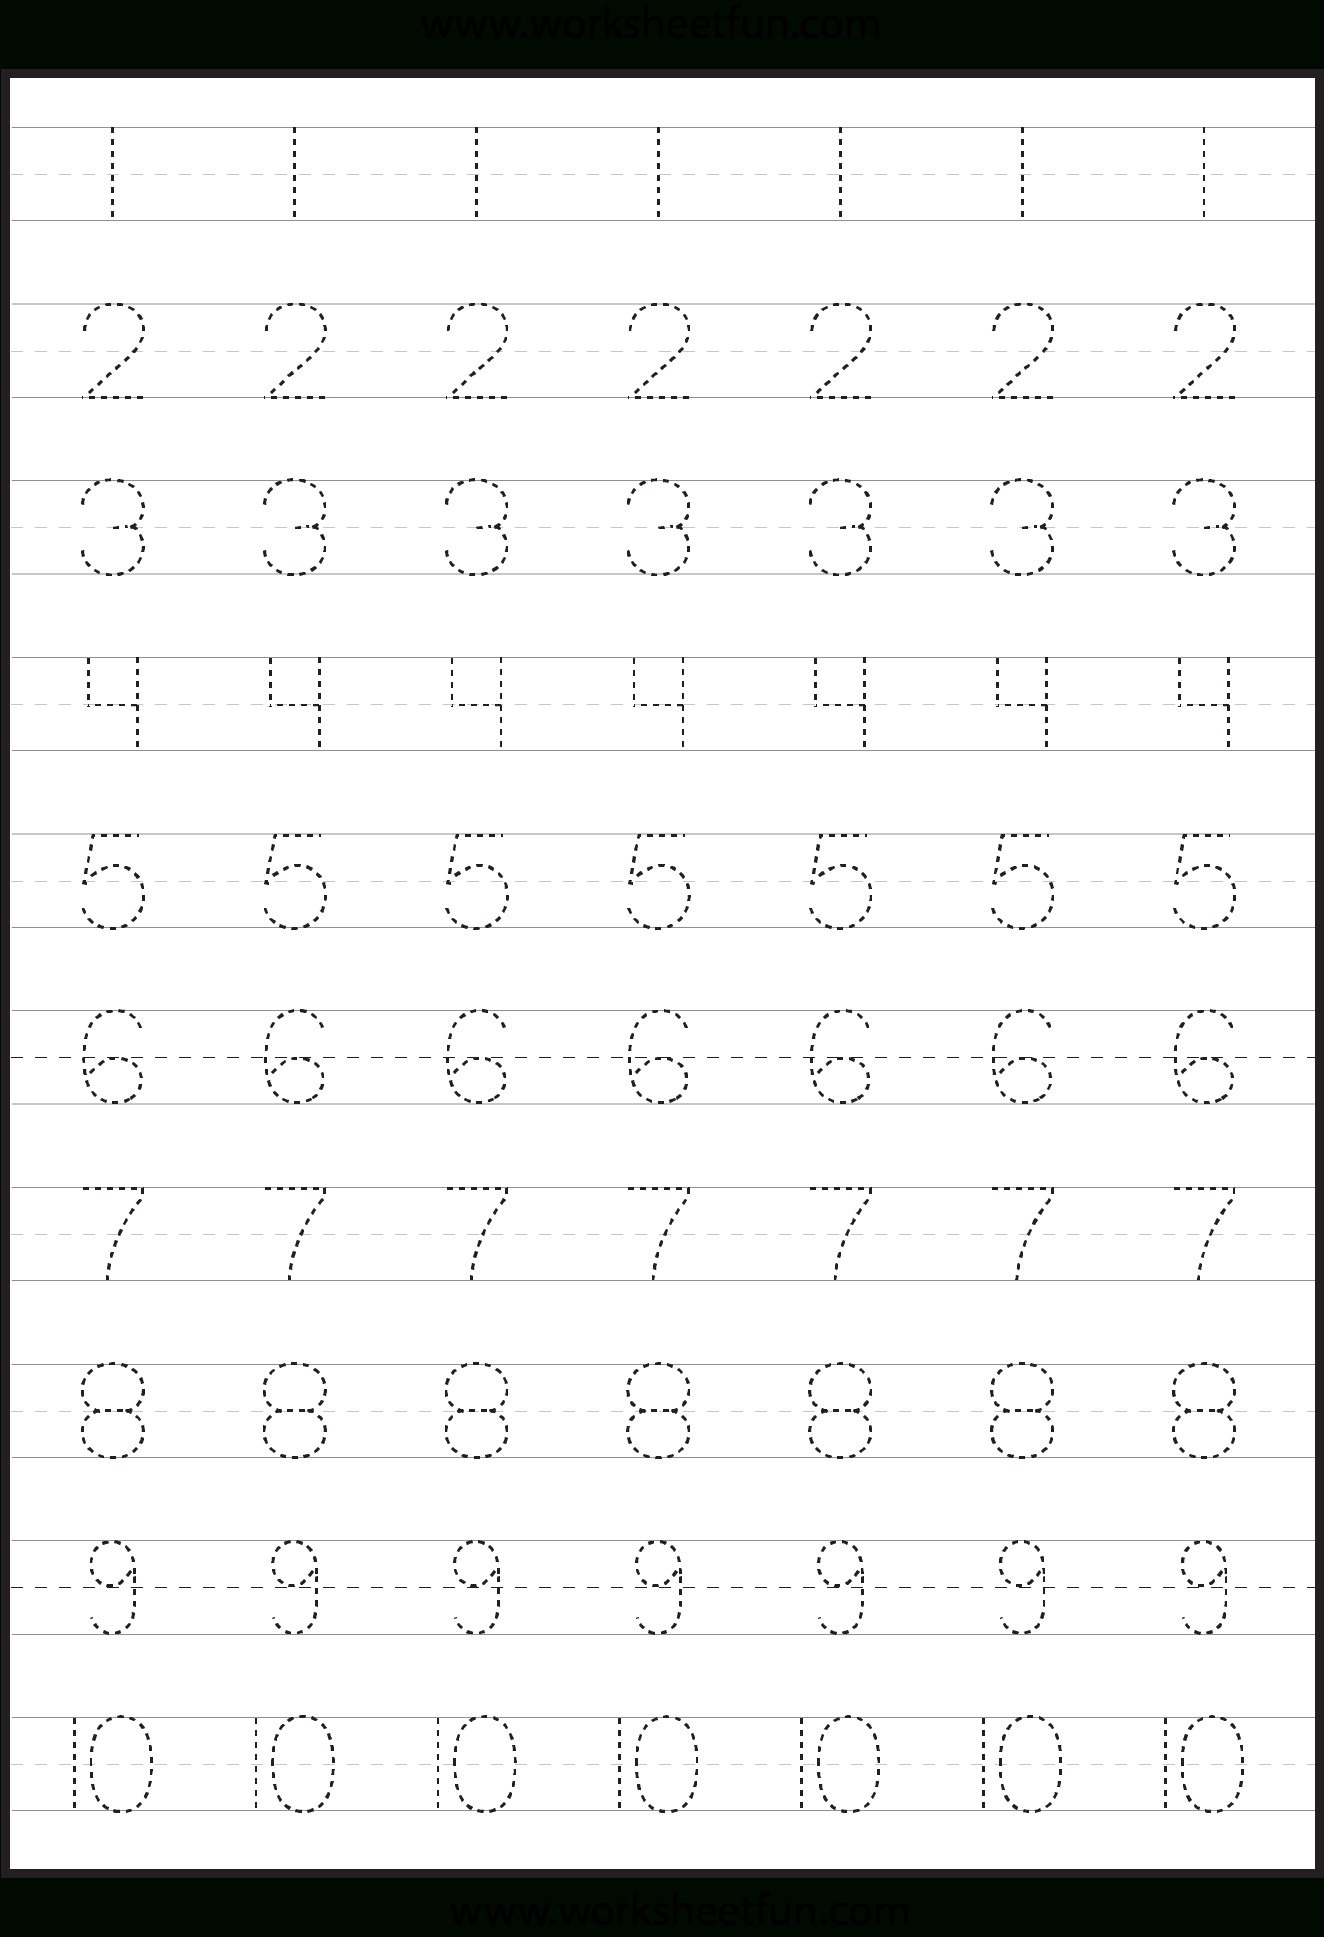 Number Tracing Worksheets For Kindergarten- 1-10 – Ten Worksheets | Printable Worksheets For Preschoolers On Numbers 1 10